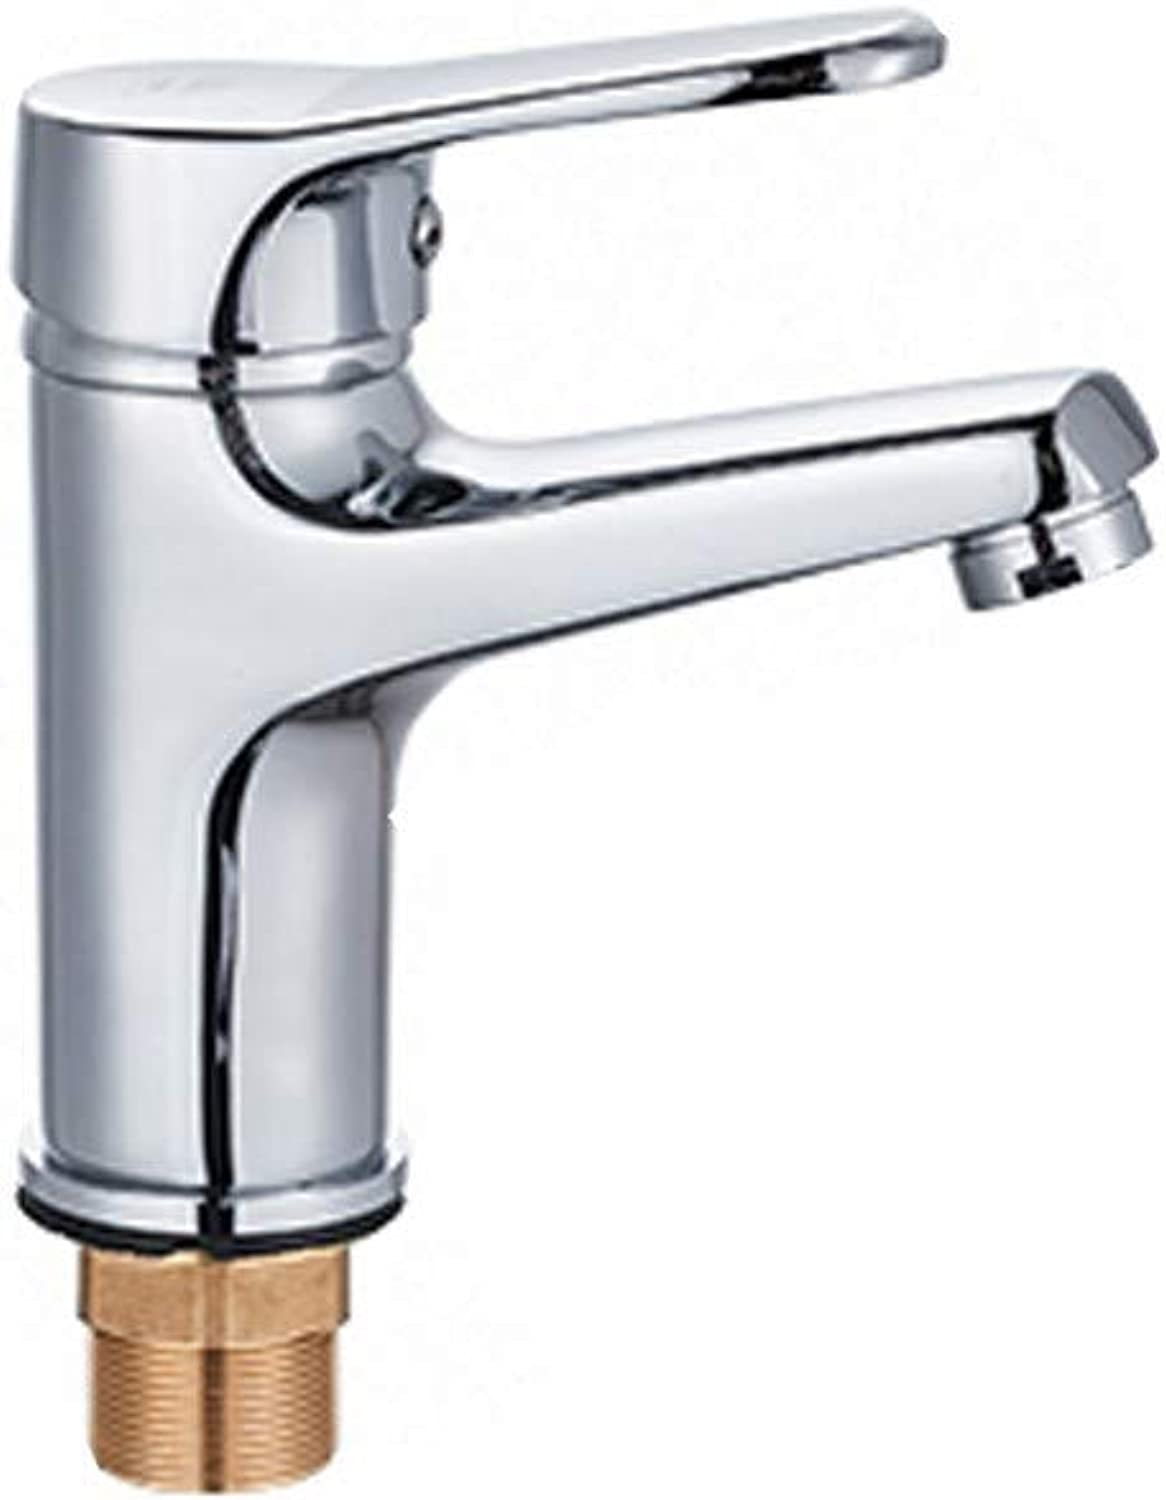 Bathroom accessories, easy to use and user-friendl Faucet, Single Hole Copper Hot and Cold Wash Basin Sink Bathroom Basin Faucet XIAHE (Edition    1)